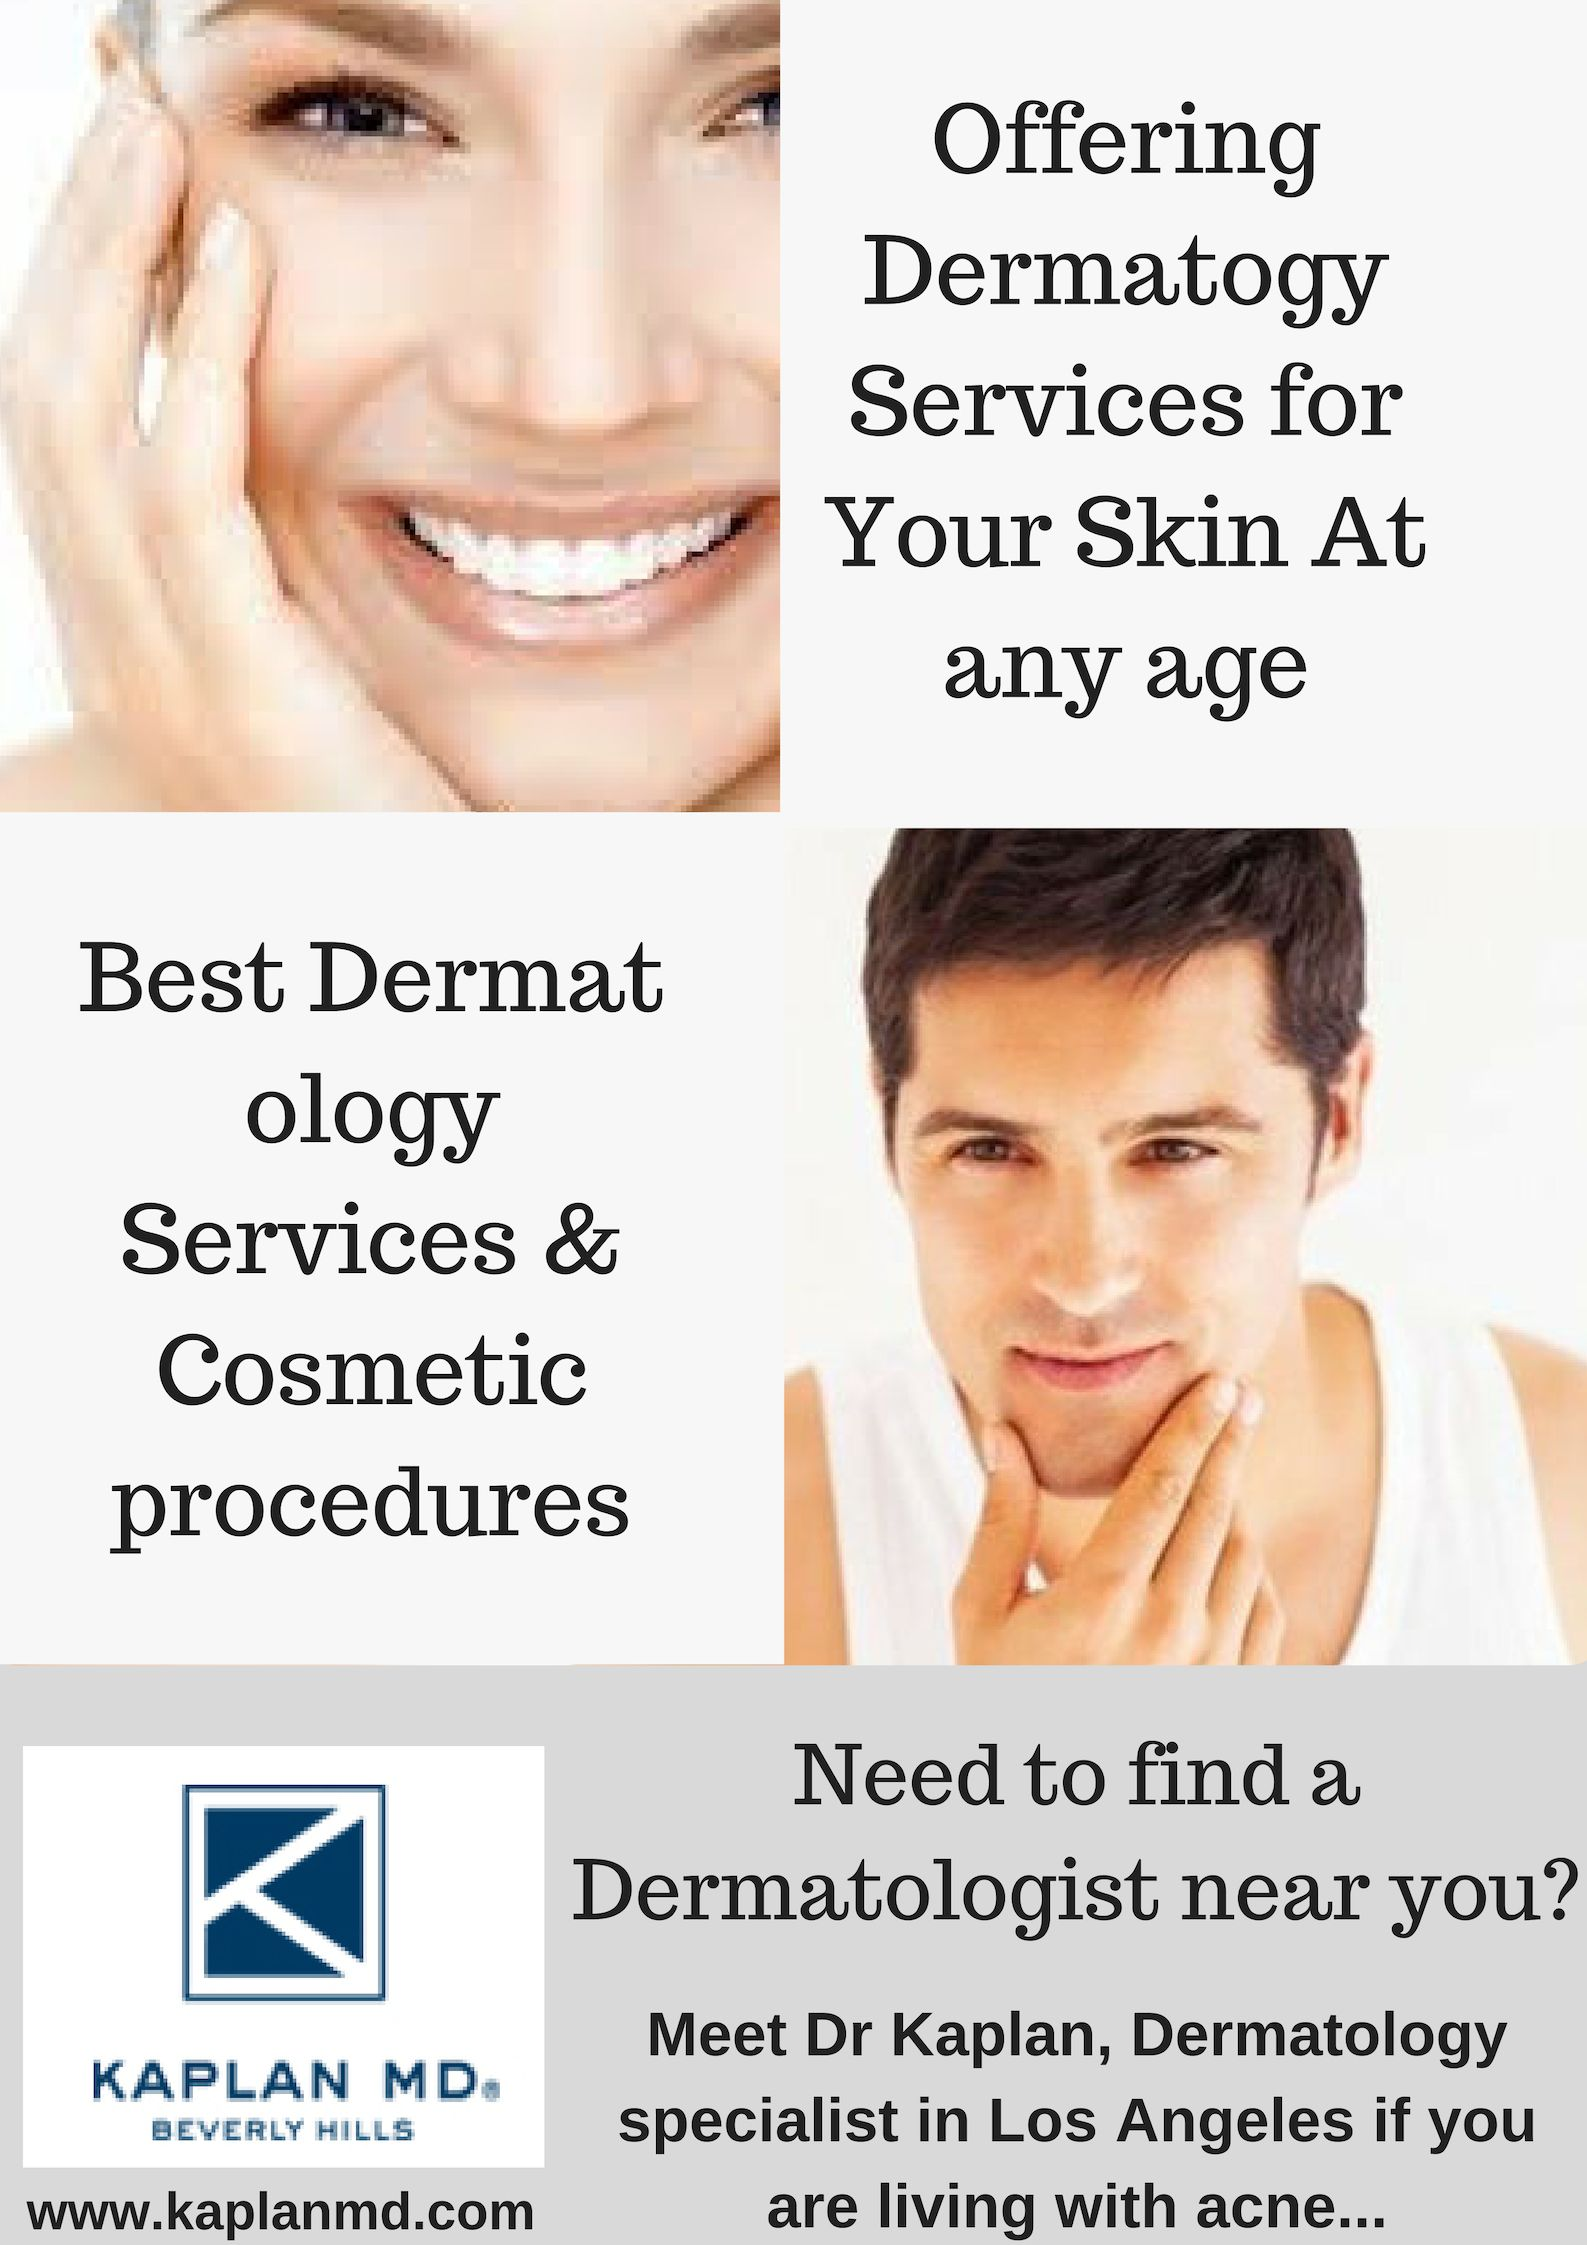 Need to find a #dermatology specialist near you? Meet Dr